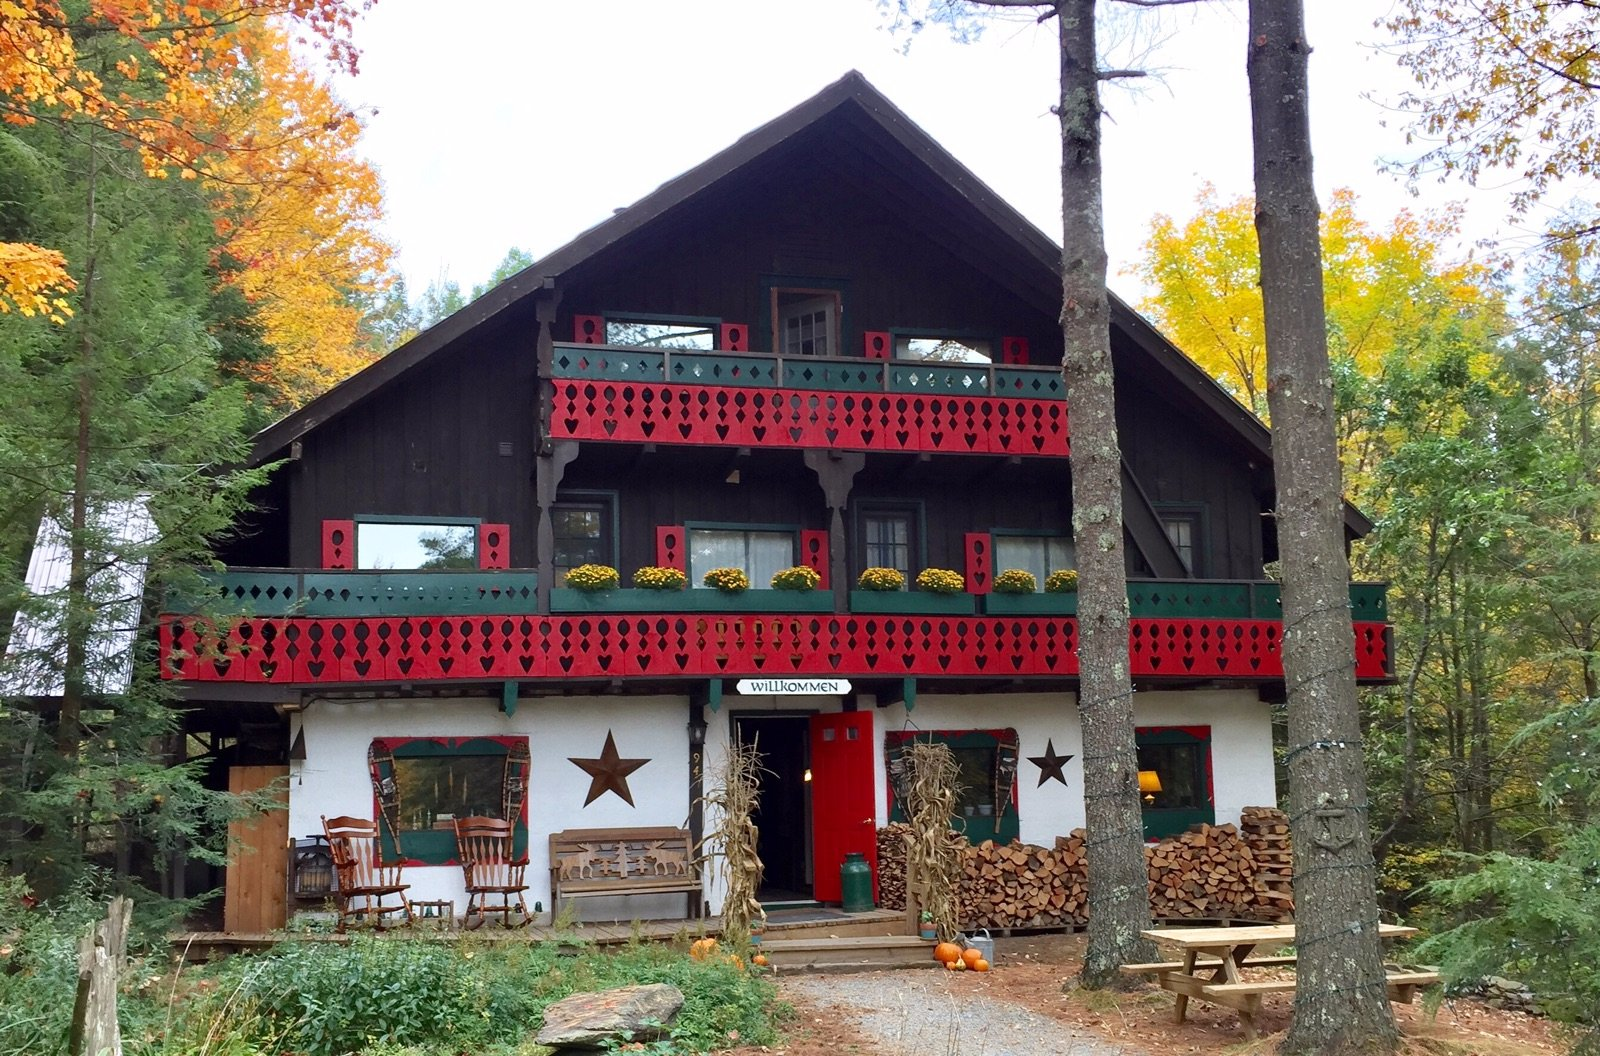 Grunberg Haus Bed and Breakfast Inn and Cabins